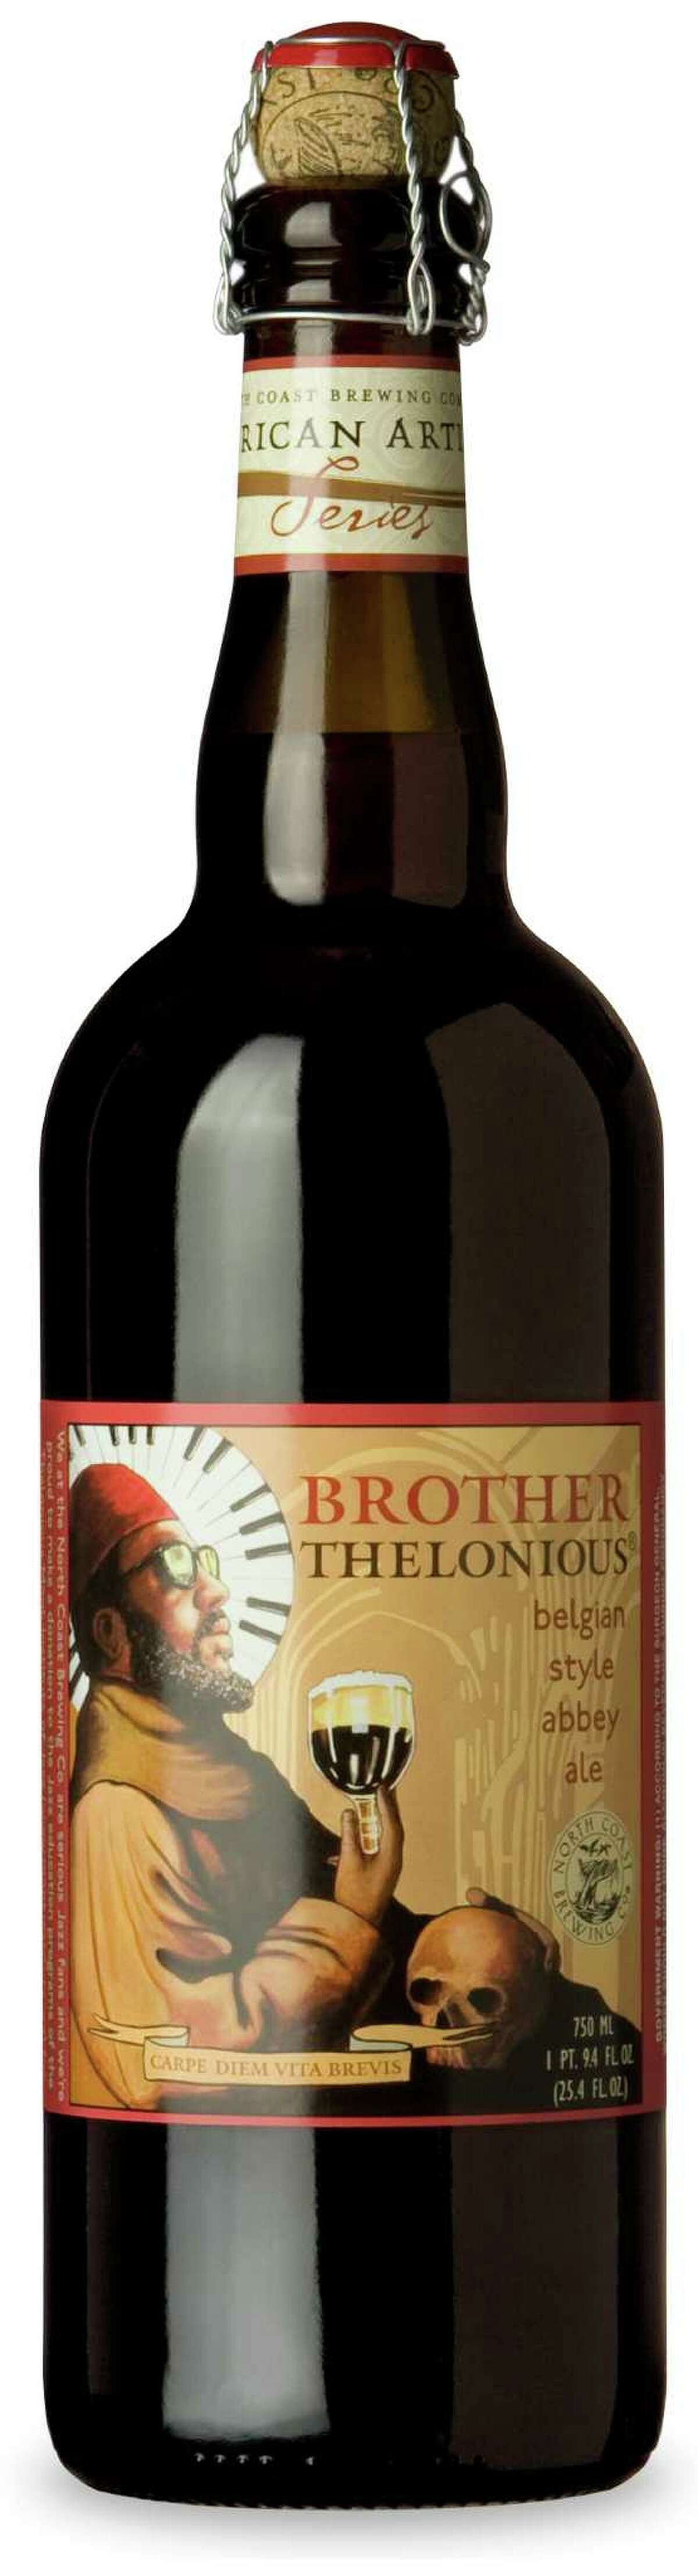 750ml bottle of Brother Theloniou.